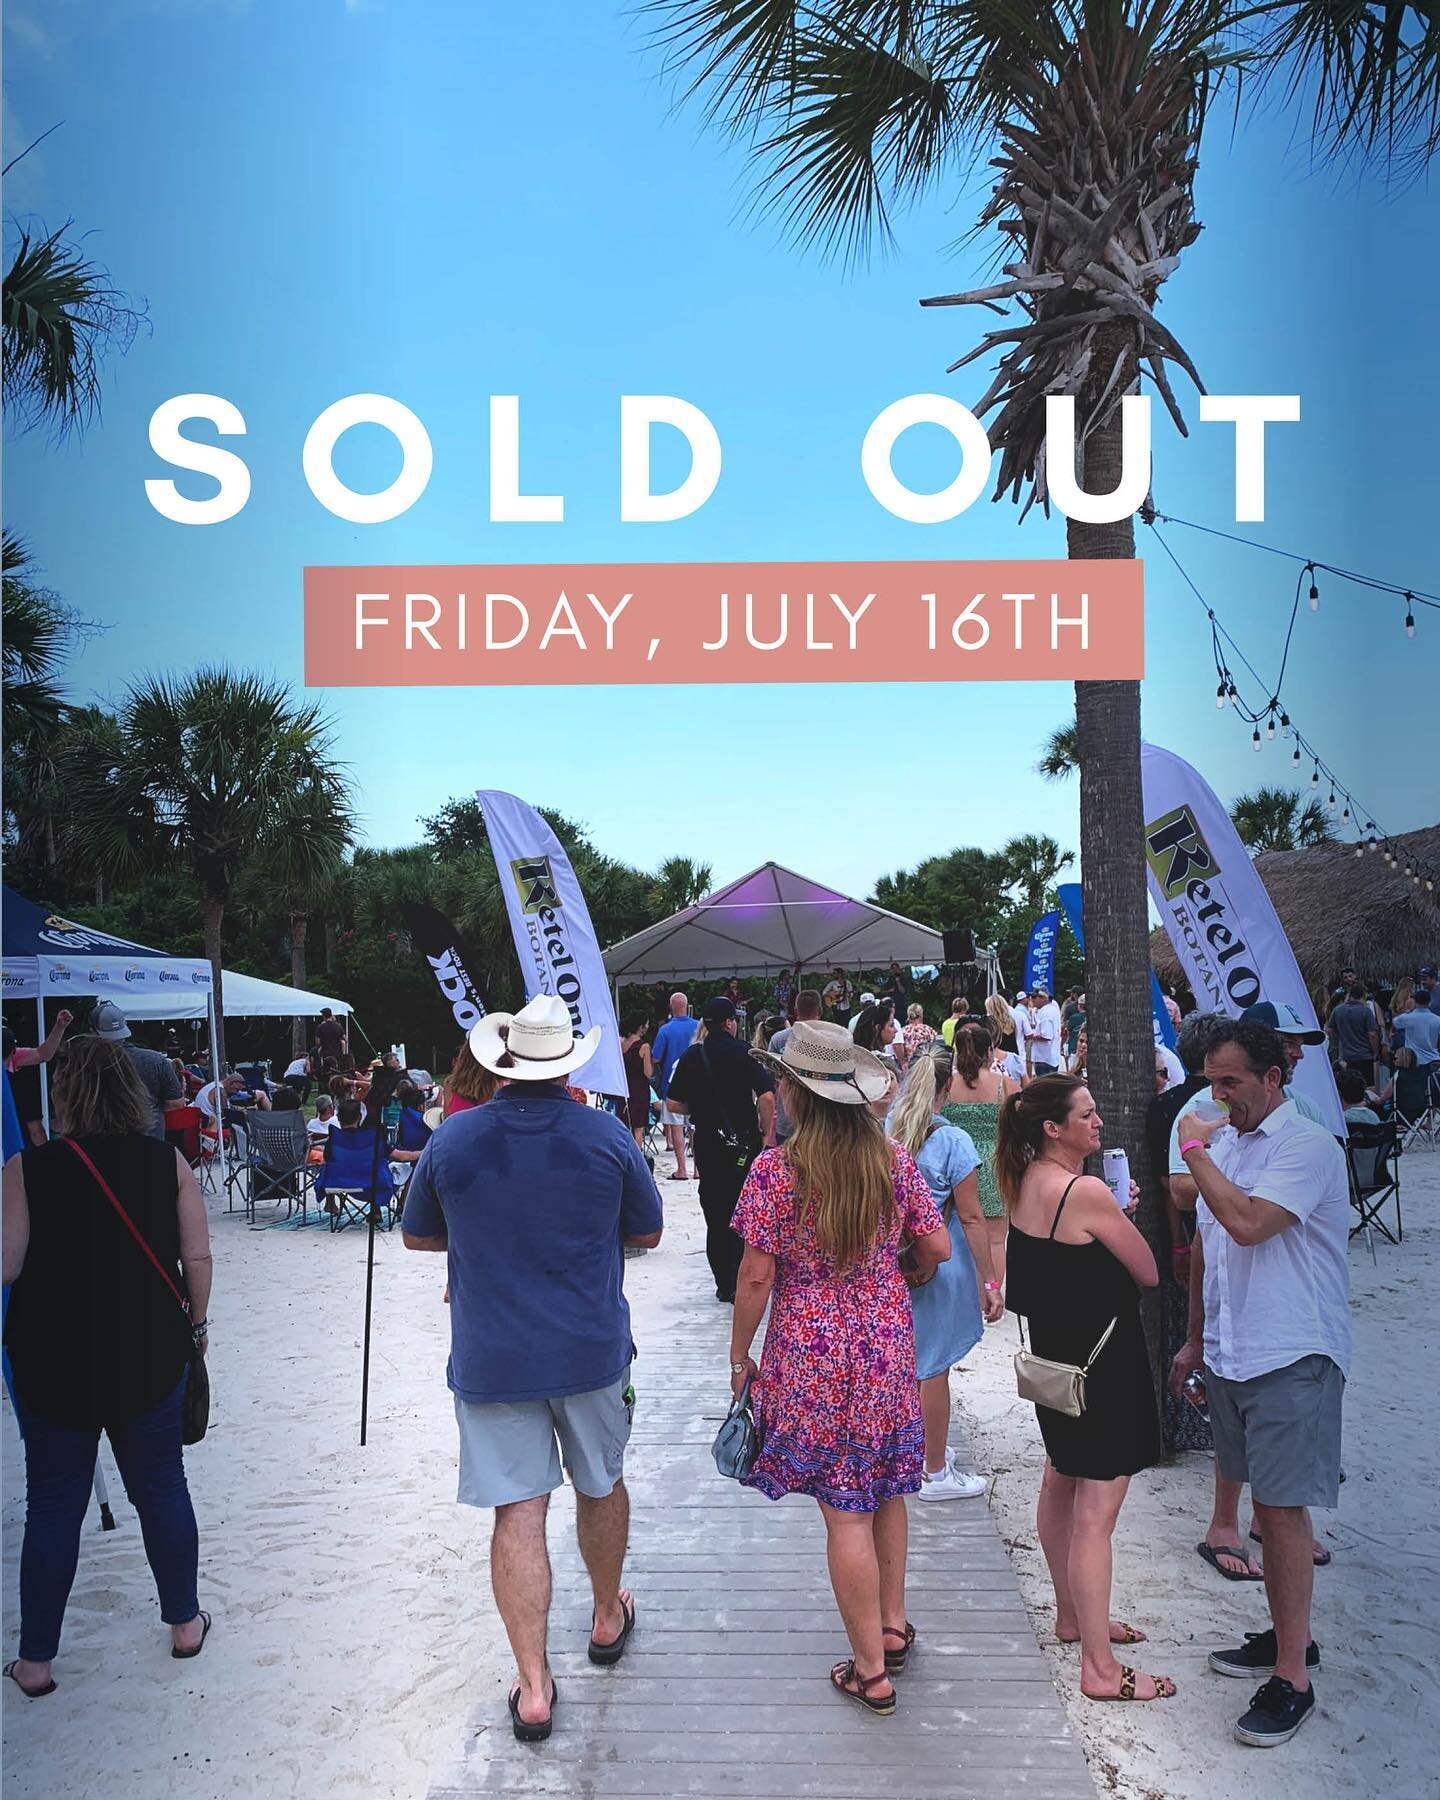 Tonight's Party at the Point show with Red Dog Ramblers is officially SOLD OUT!   Get ahead of the crowd and grab your tickets for next week's show with @mrhollandsoats via the link in our bio!!  Special thanks to @cheerssc @ketelonebotanical @ketelone @corona @modelousa @thebridgeat1055 @my98rock @redsicehouse @starlingchevroletmp @earformusic @charlestonharborresort @charlestonharbormarina